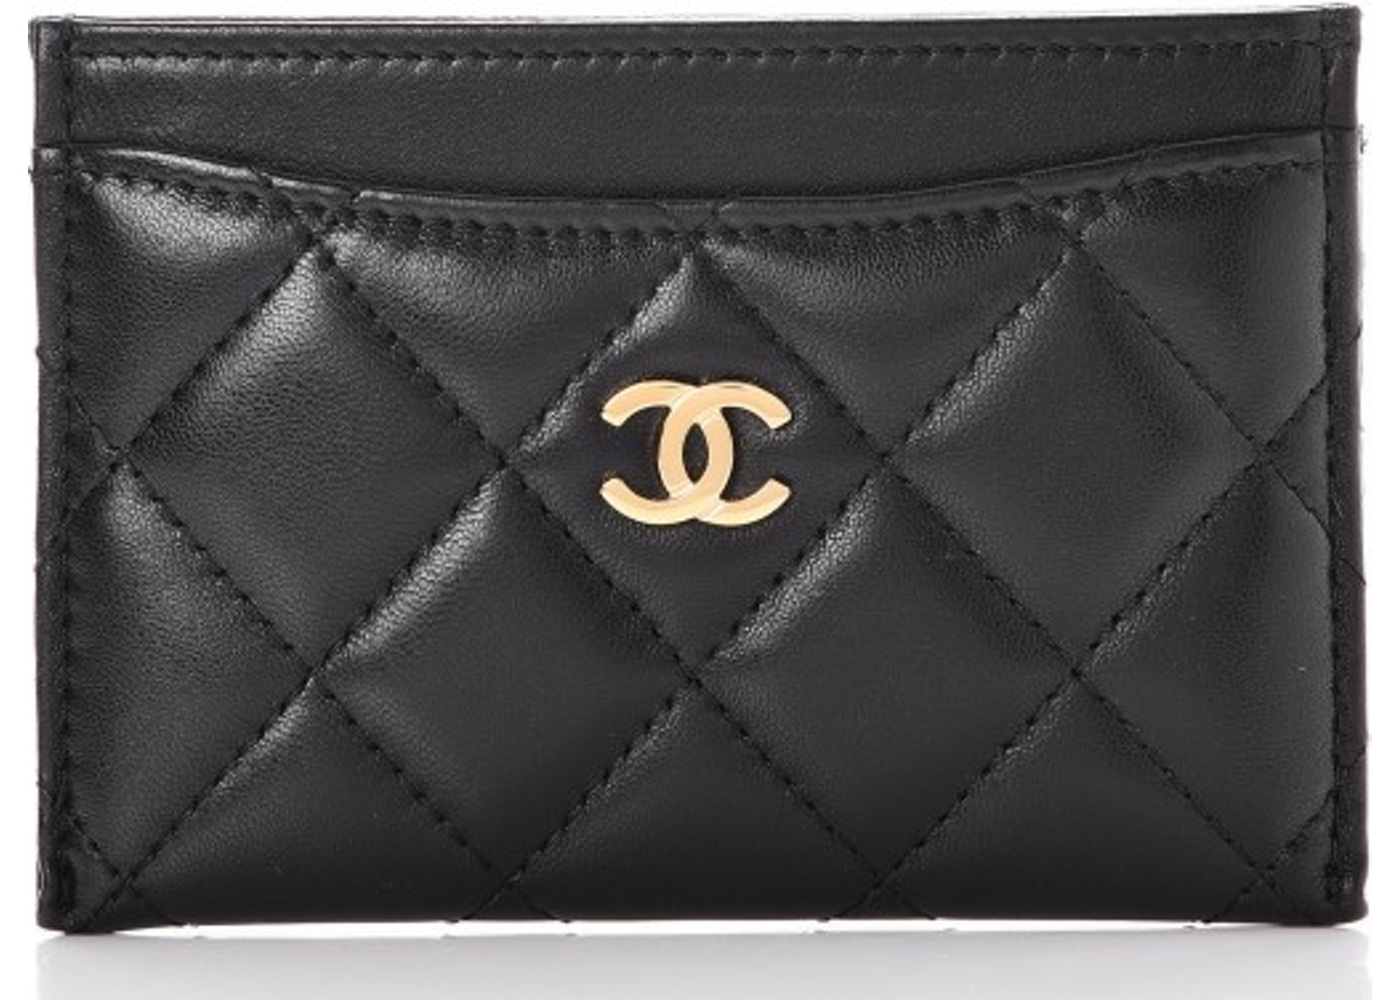 d927d15b5a5 Chanel Card Holder Quilted Diamond Lambskin Black. Quilted Diamond Lambskin  Black